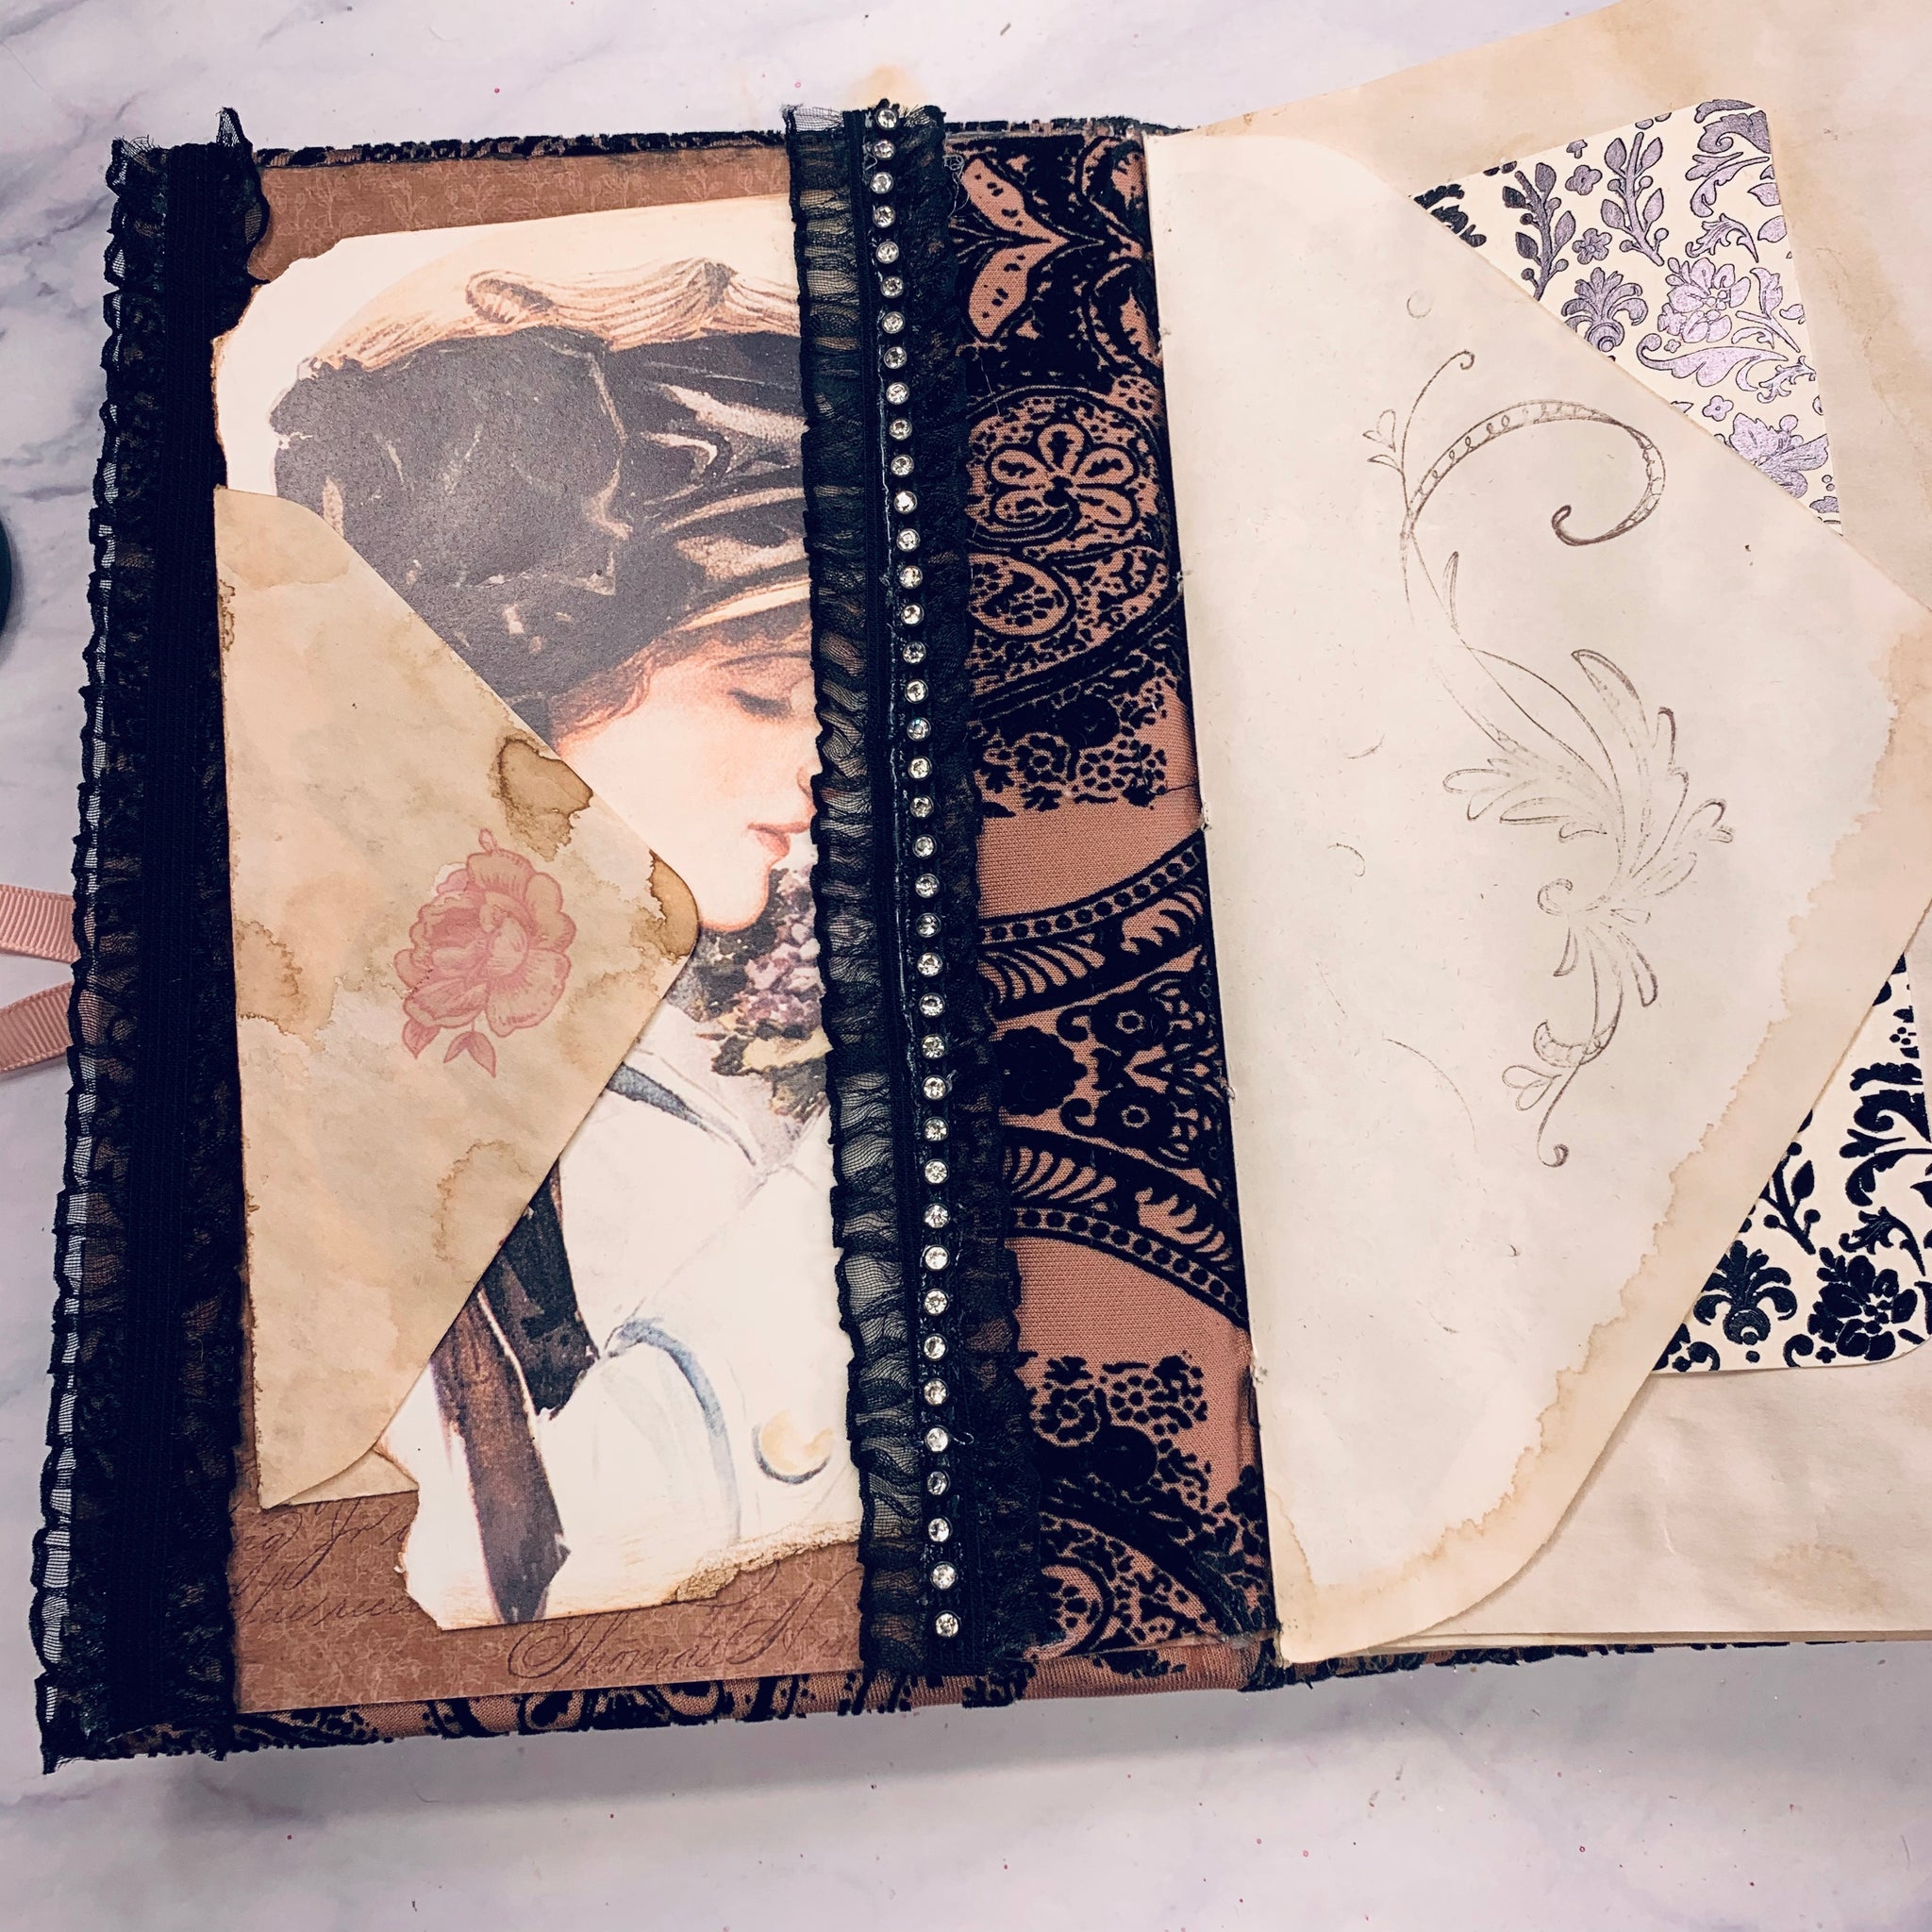 Velvet Junk Journal by Beatriz Barraza